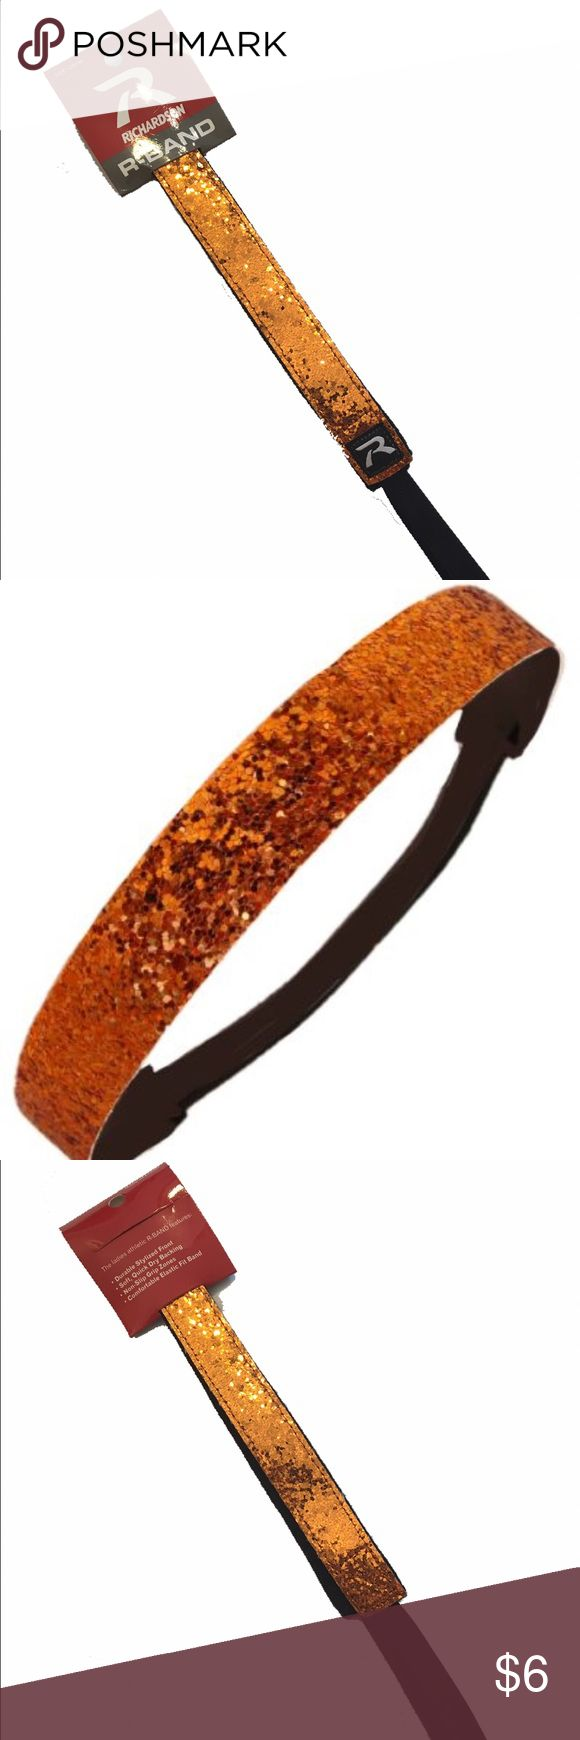 """RICHARDSON Orange Glitter Softball Headband R-Band Brand new with tags. Never worn. No condition issues. Great for sports, school spirit week. Show your school colors. Orange glitter. Has no slip grip dots inside Band. Approximately 19"""" inches in circumference, unstretched. Richardson Accessories Hair Accessories"""